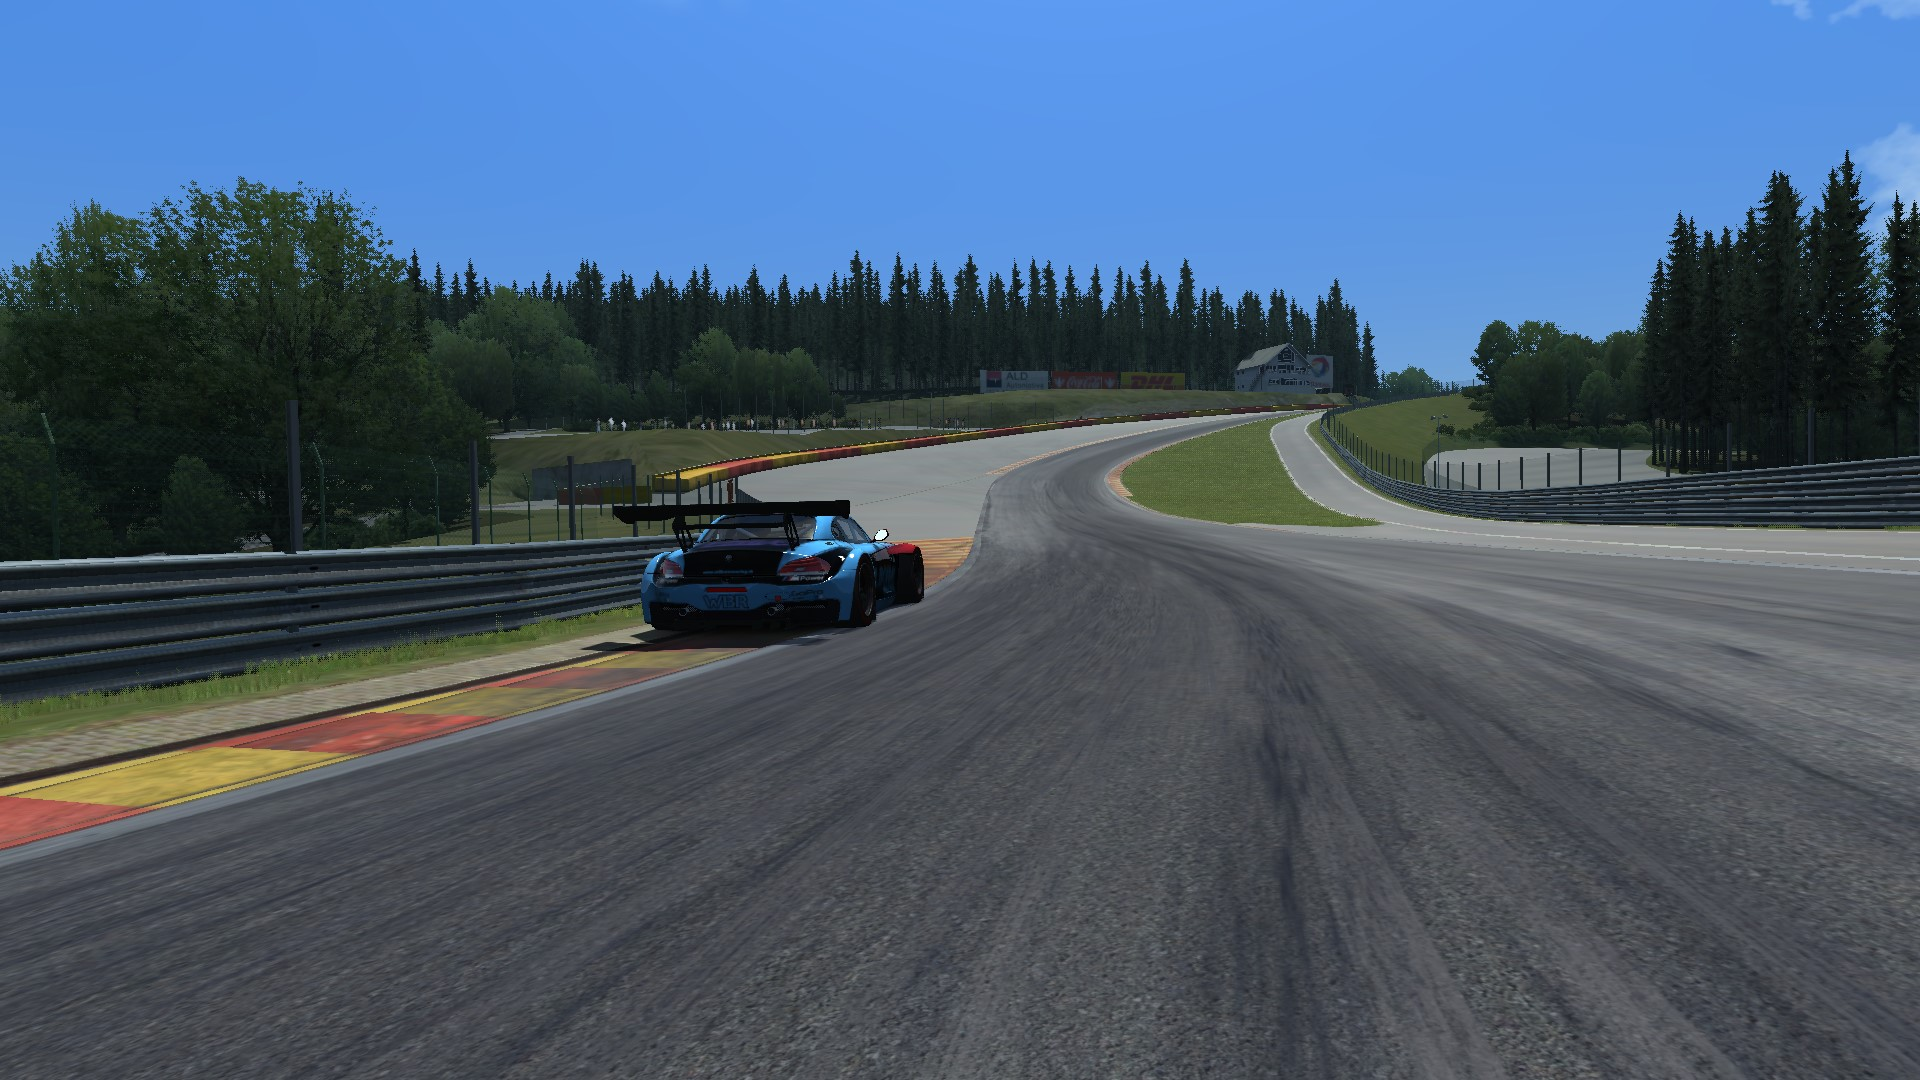 Screenshot_sareni_camaro_gt_racecar_spa_2-2-2015-17-16-48.jpg